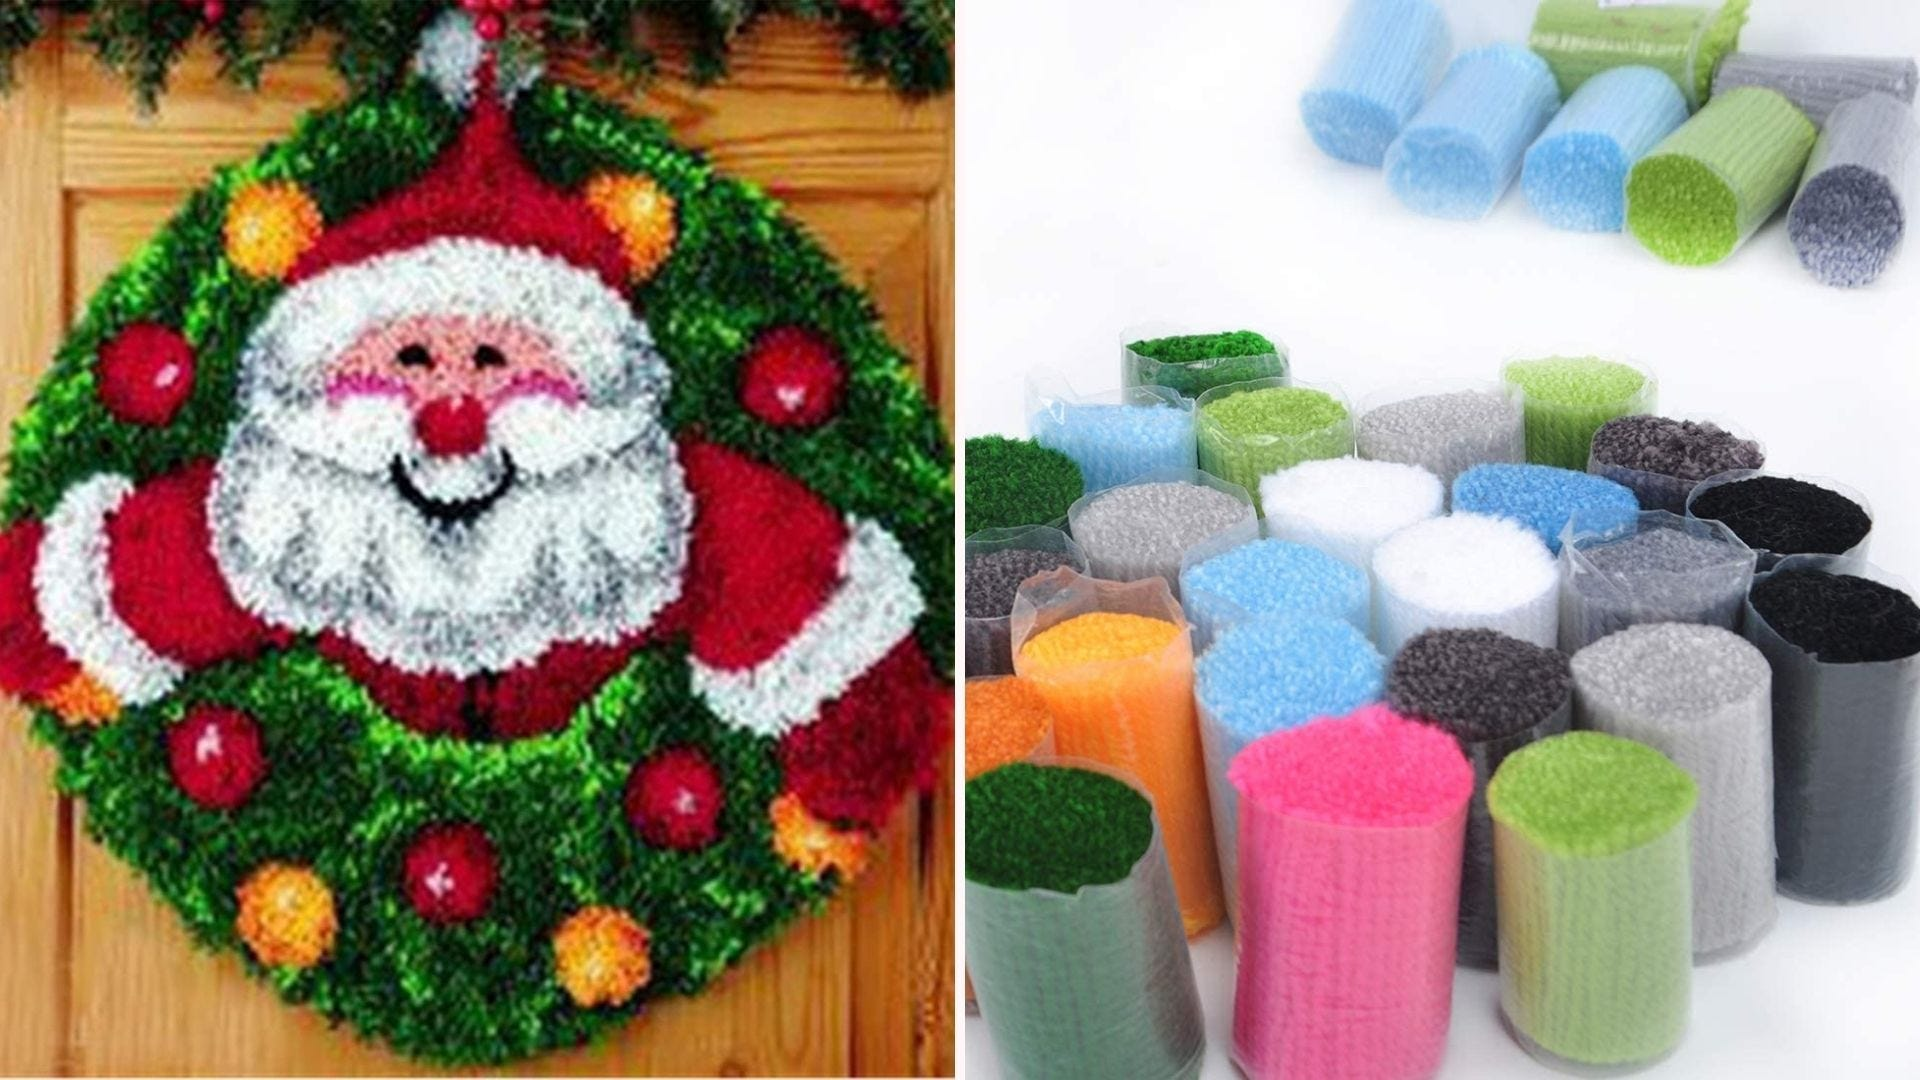 a Santa-printed decorative yarn piece hanging from a door with yarn pieces bundled on the side